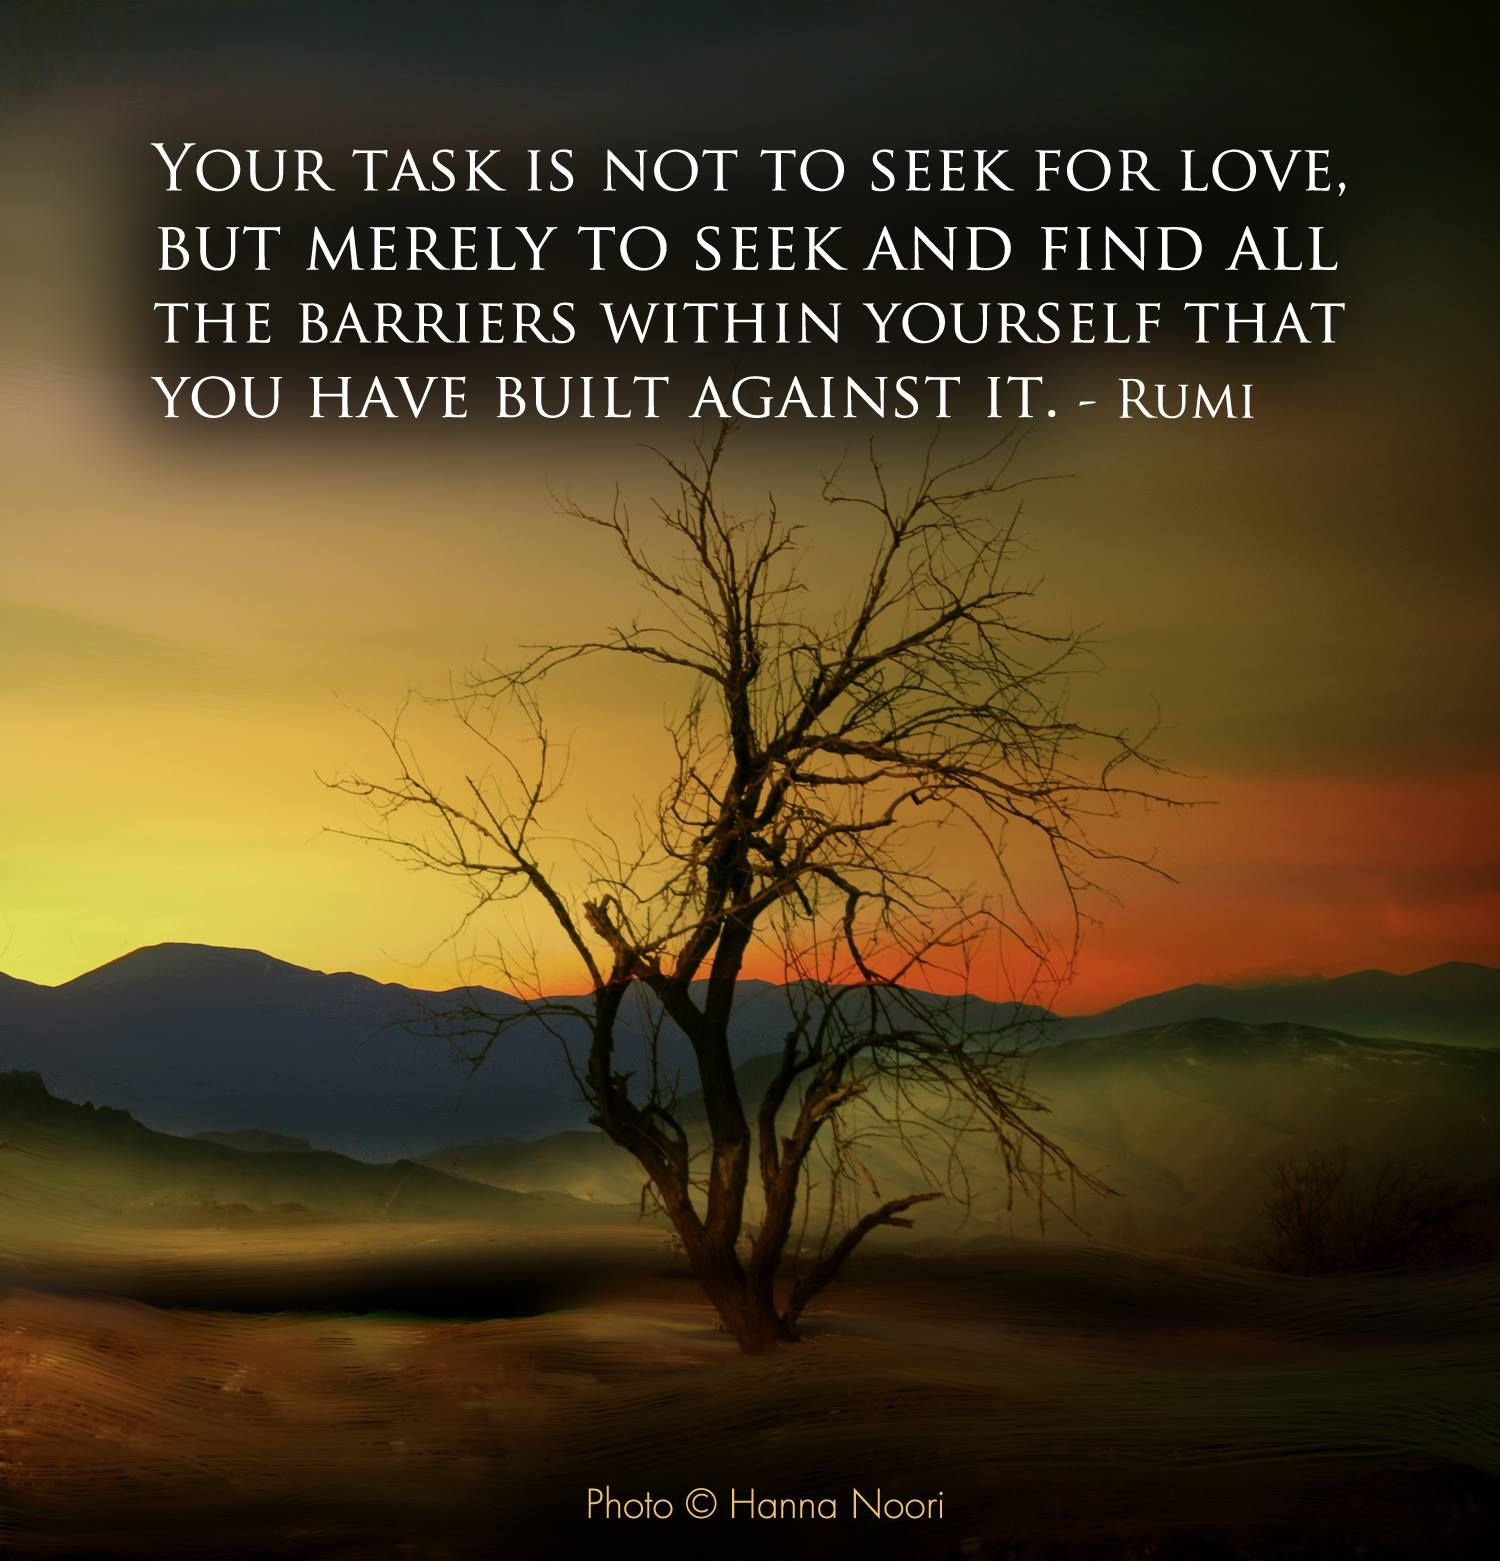 Your task is not to seek for love,  But merely to seek and find all  the barriers within yourself that  you have built against it